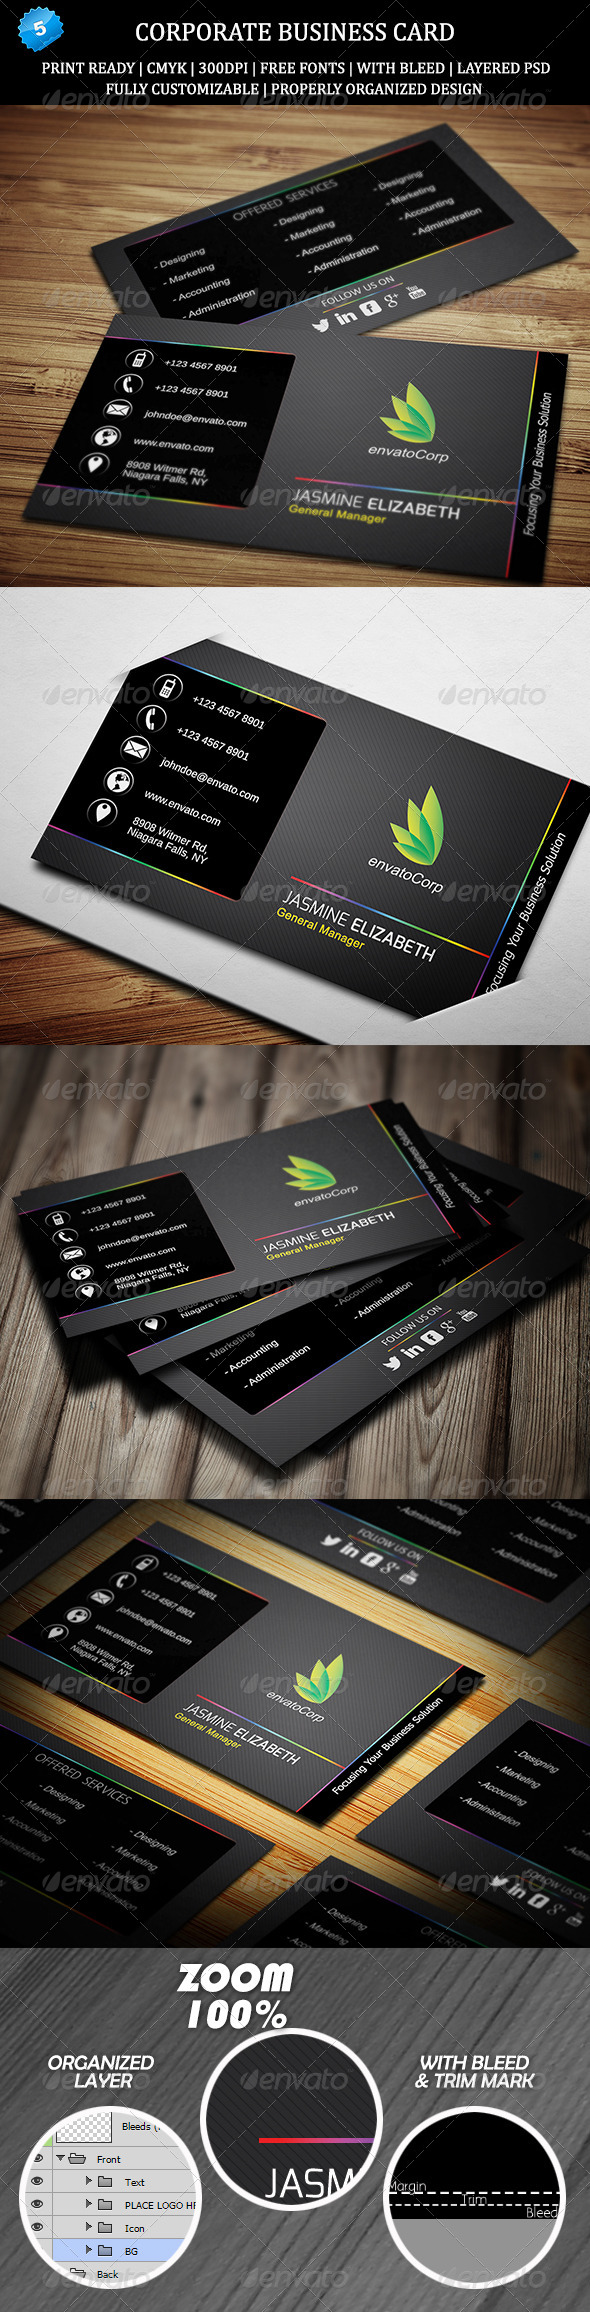 Corporate Business Card 5 - Business Cards Print Templates